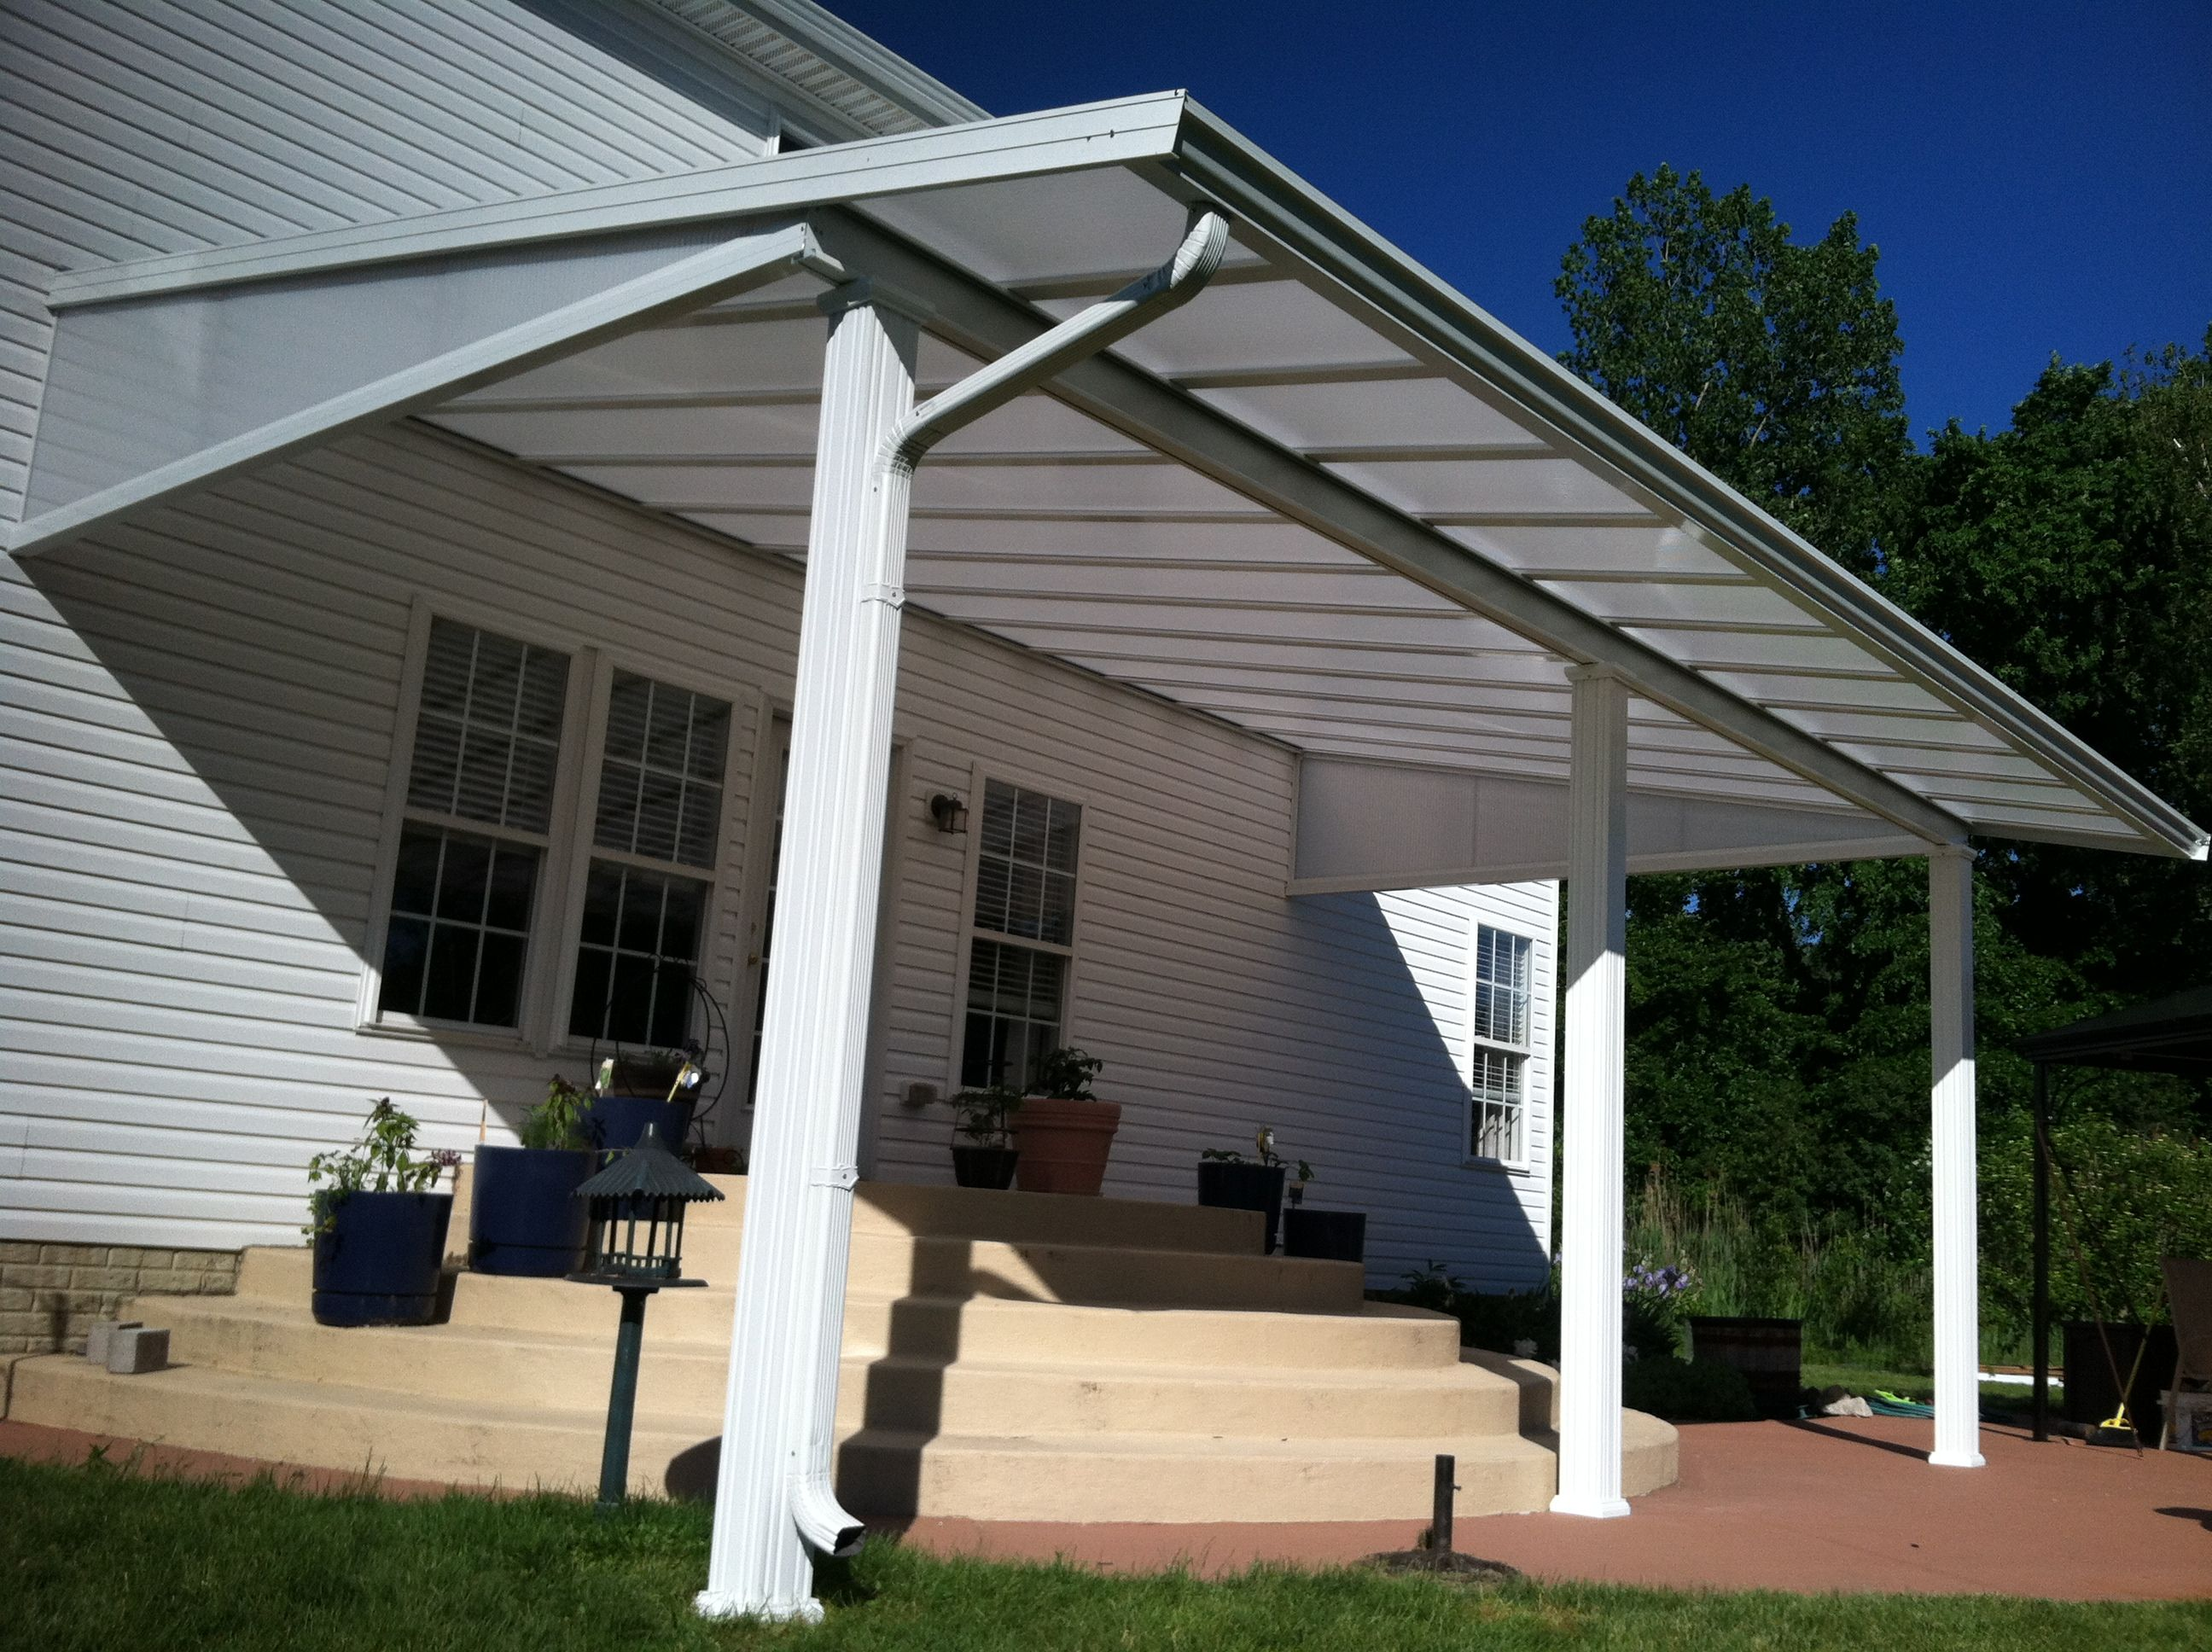 Love This Bright Cover With The Decorative Columns Available At Www Brightcovers Com 855 41 Bright Commercial Canopy Patio Covered Patio